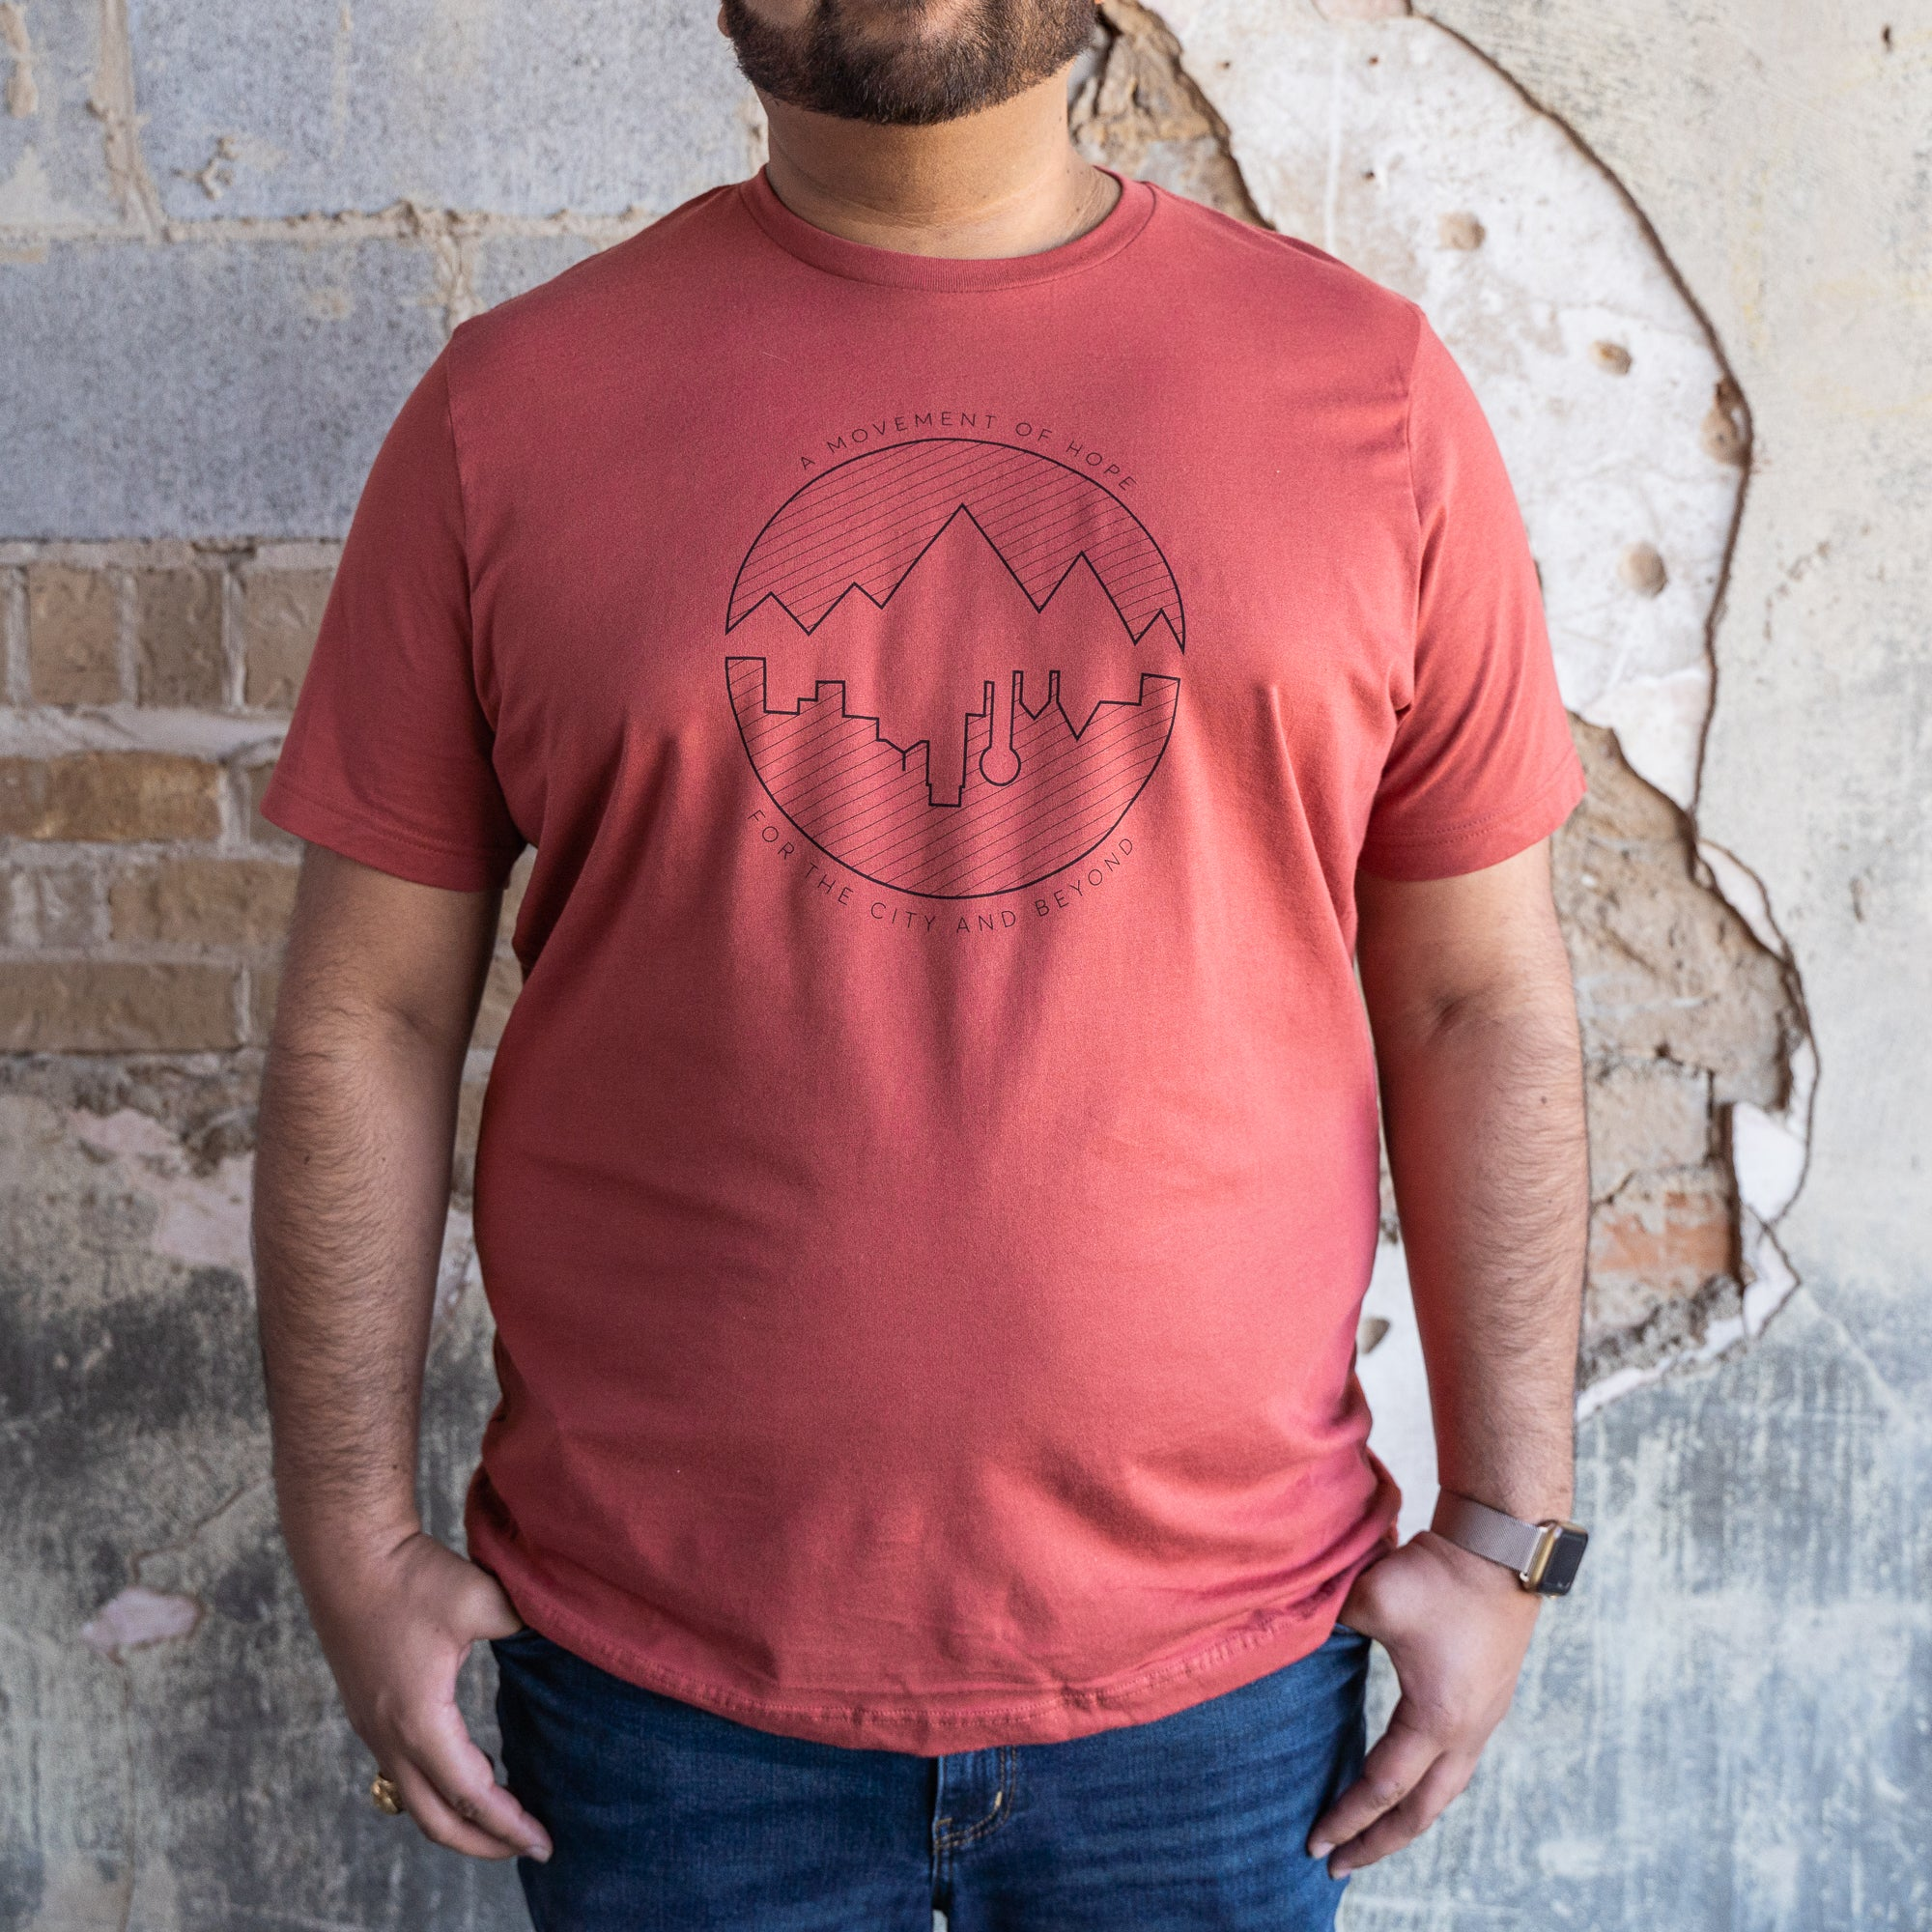 For The City And Beyond – Short Sleeve Shirt